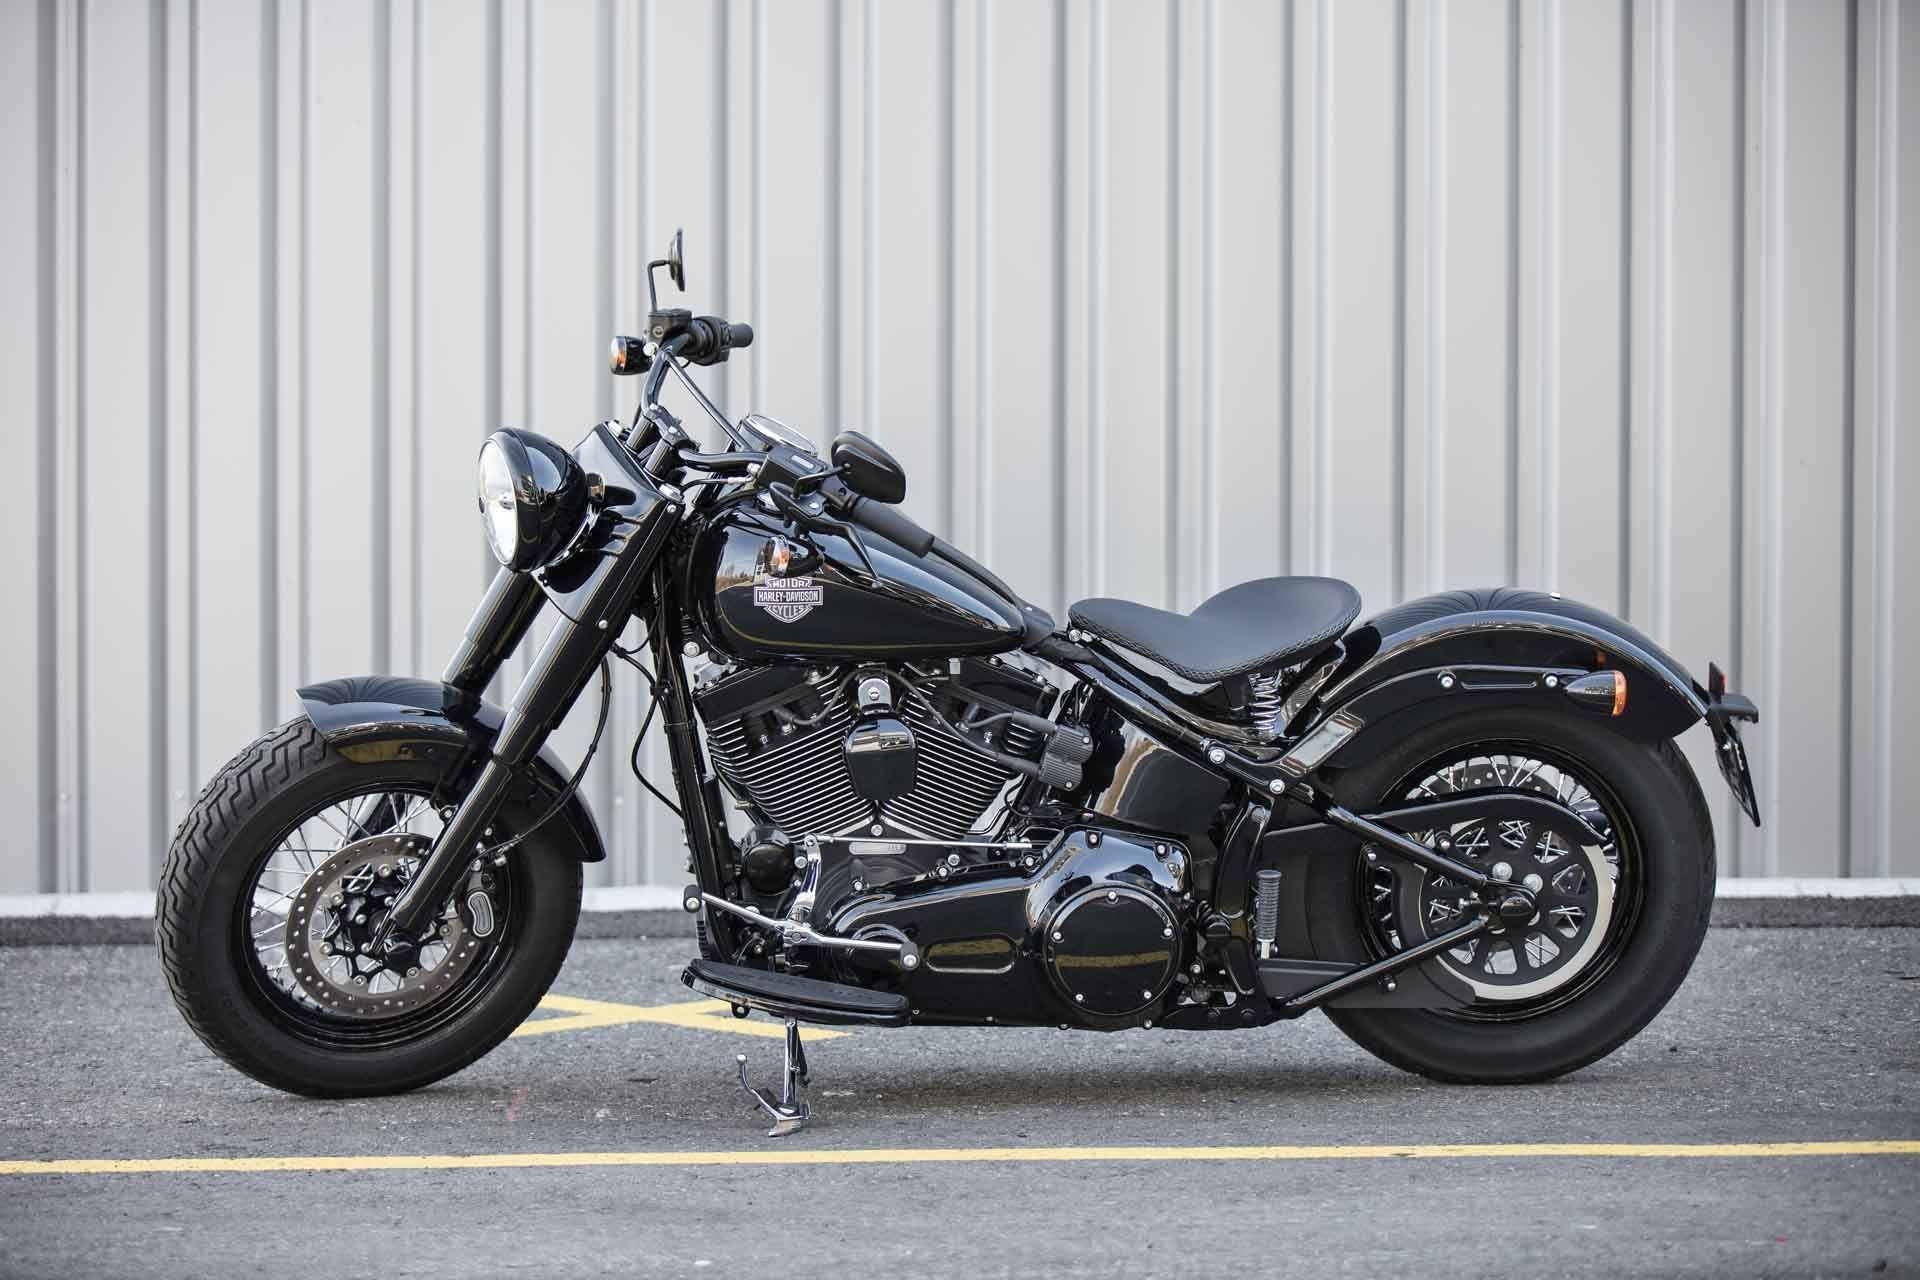 Harley Davidson Softail Slim S by house of leather